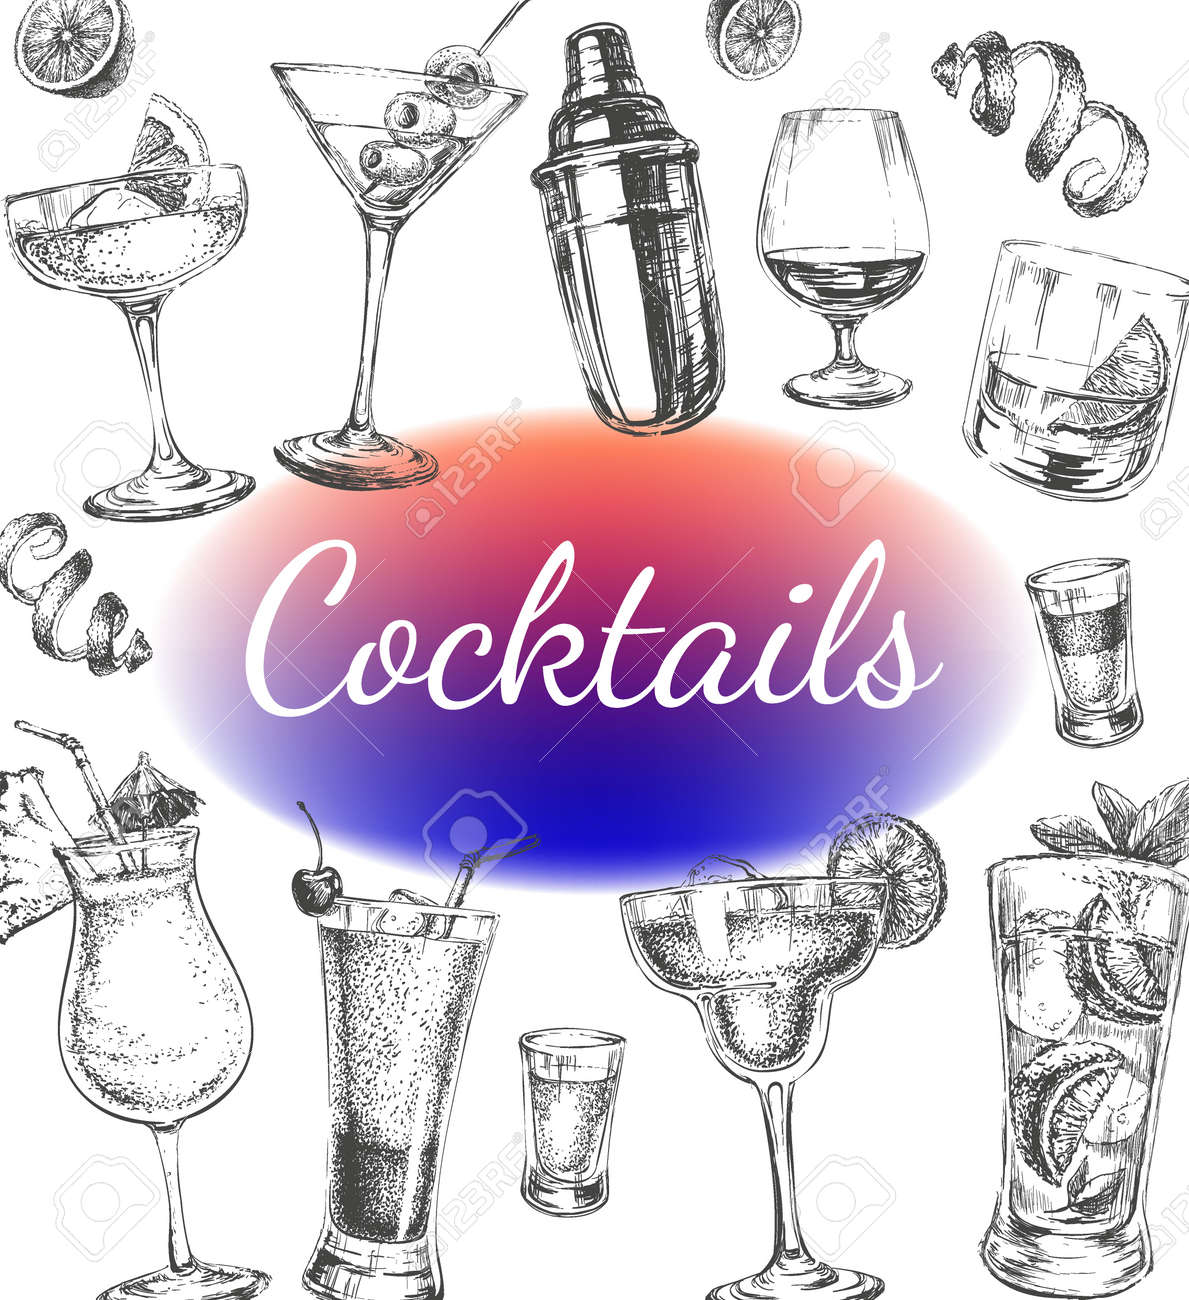 Cocktails and Alcohol Drinks Vector Hand Drawn Illustration Poster - 172543944